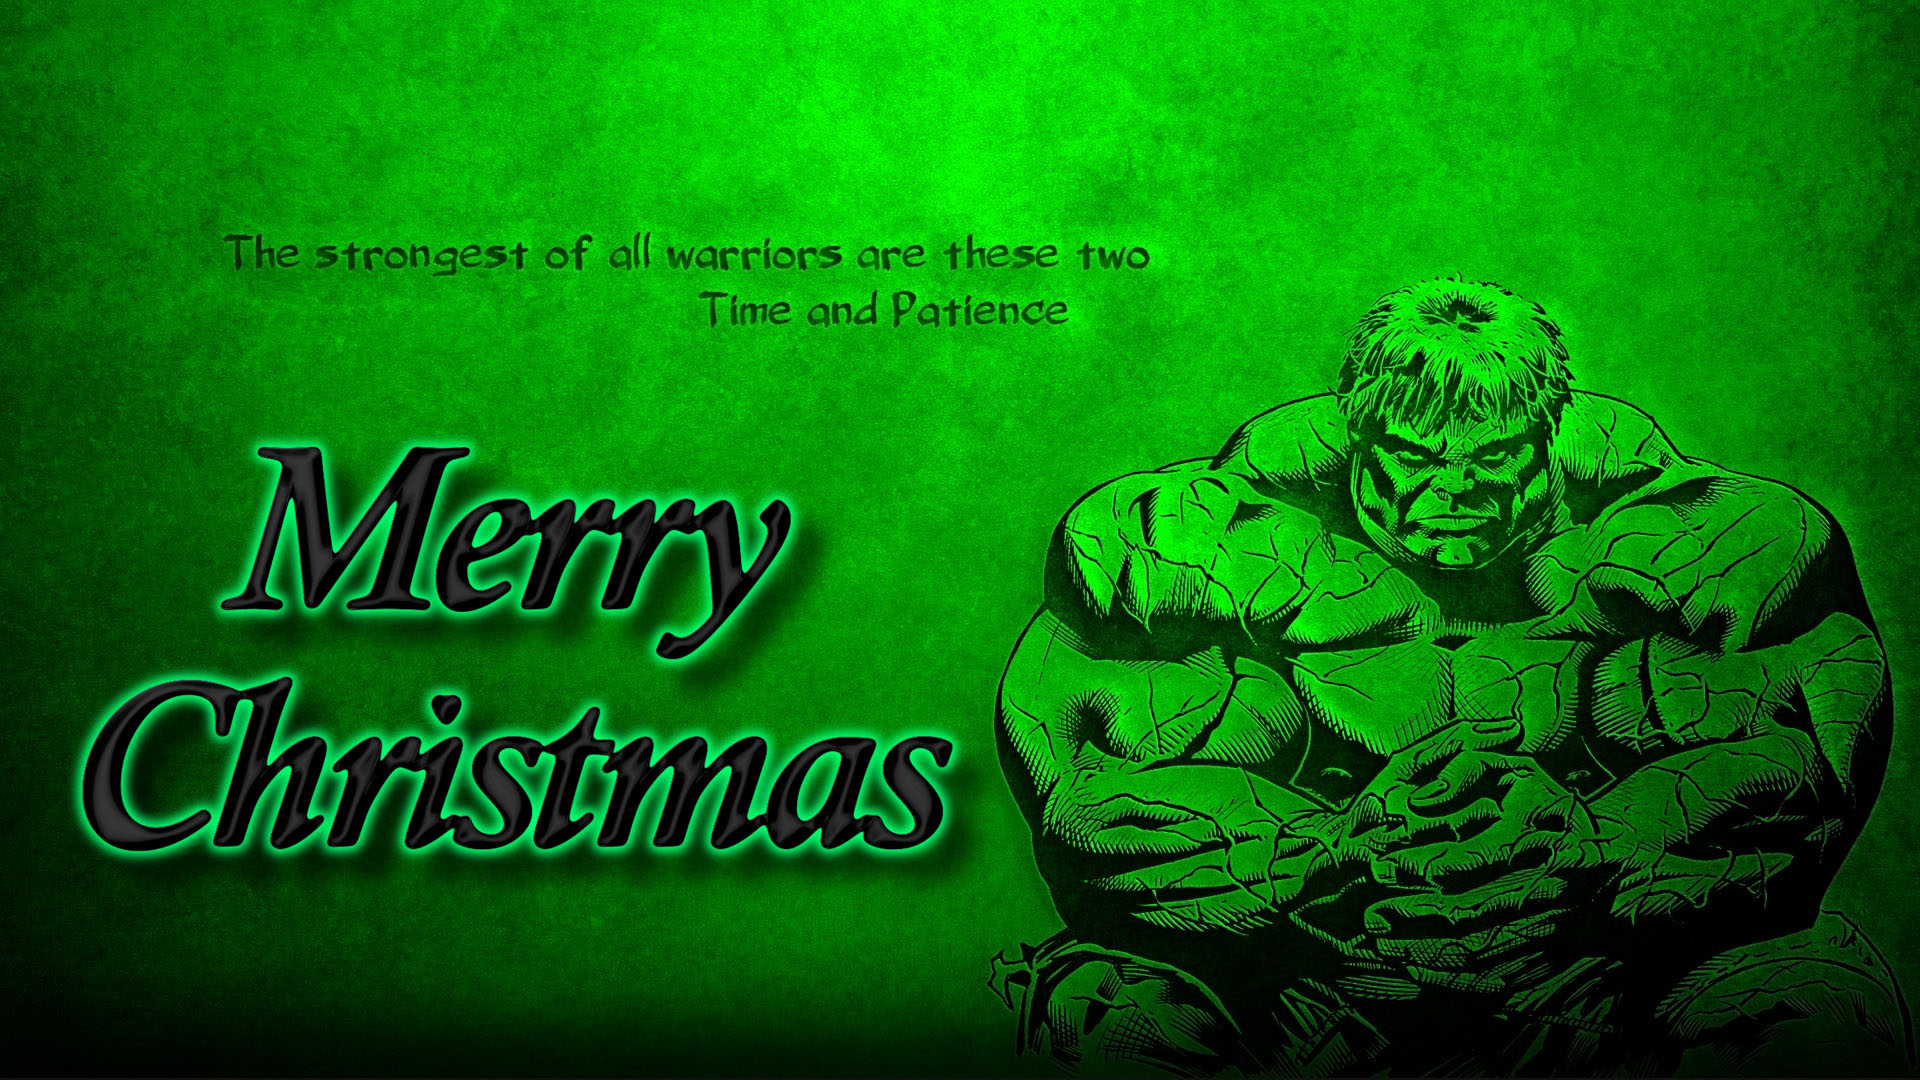 happy merry christmas incredible strongest warrior hulk quotes marvel avenger hd wallpaper